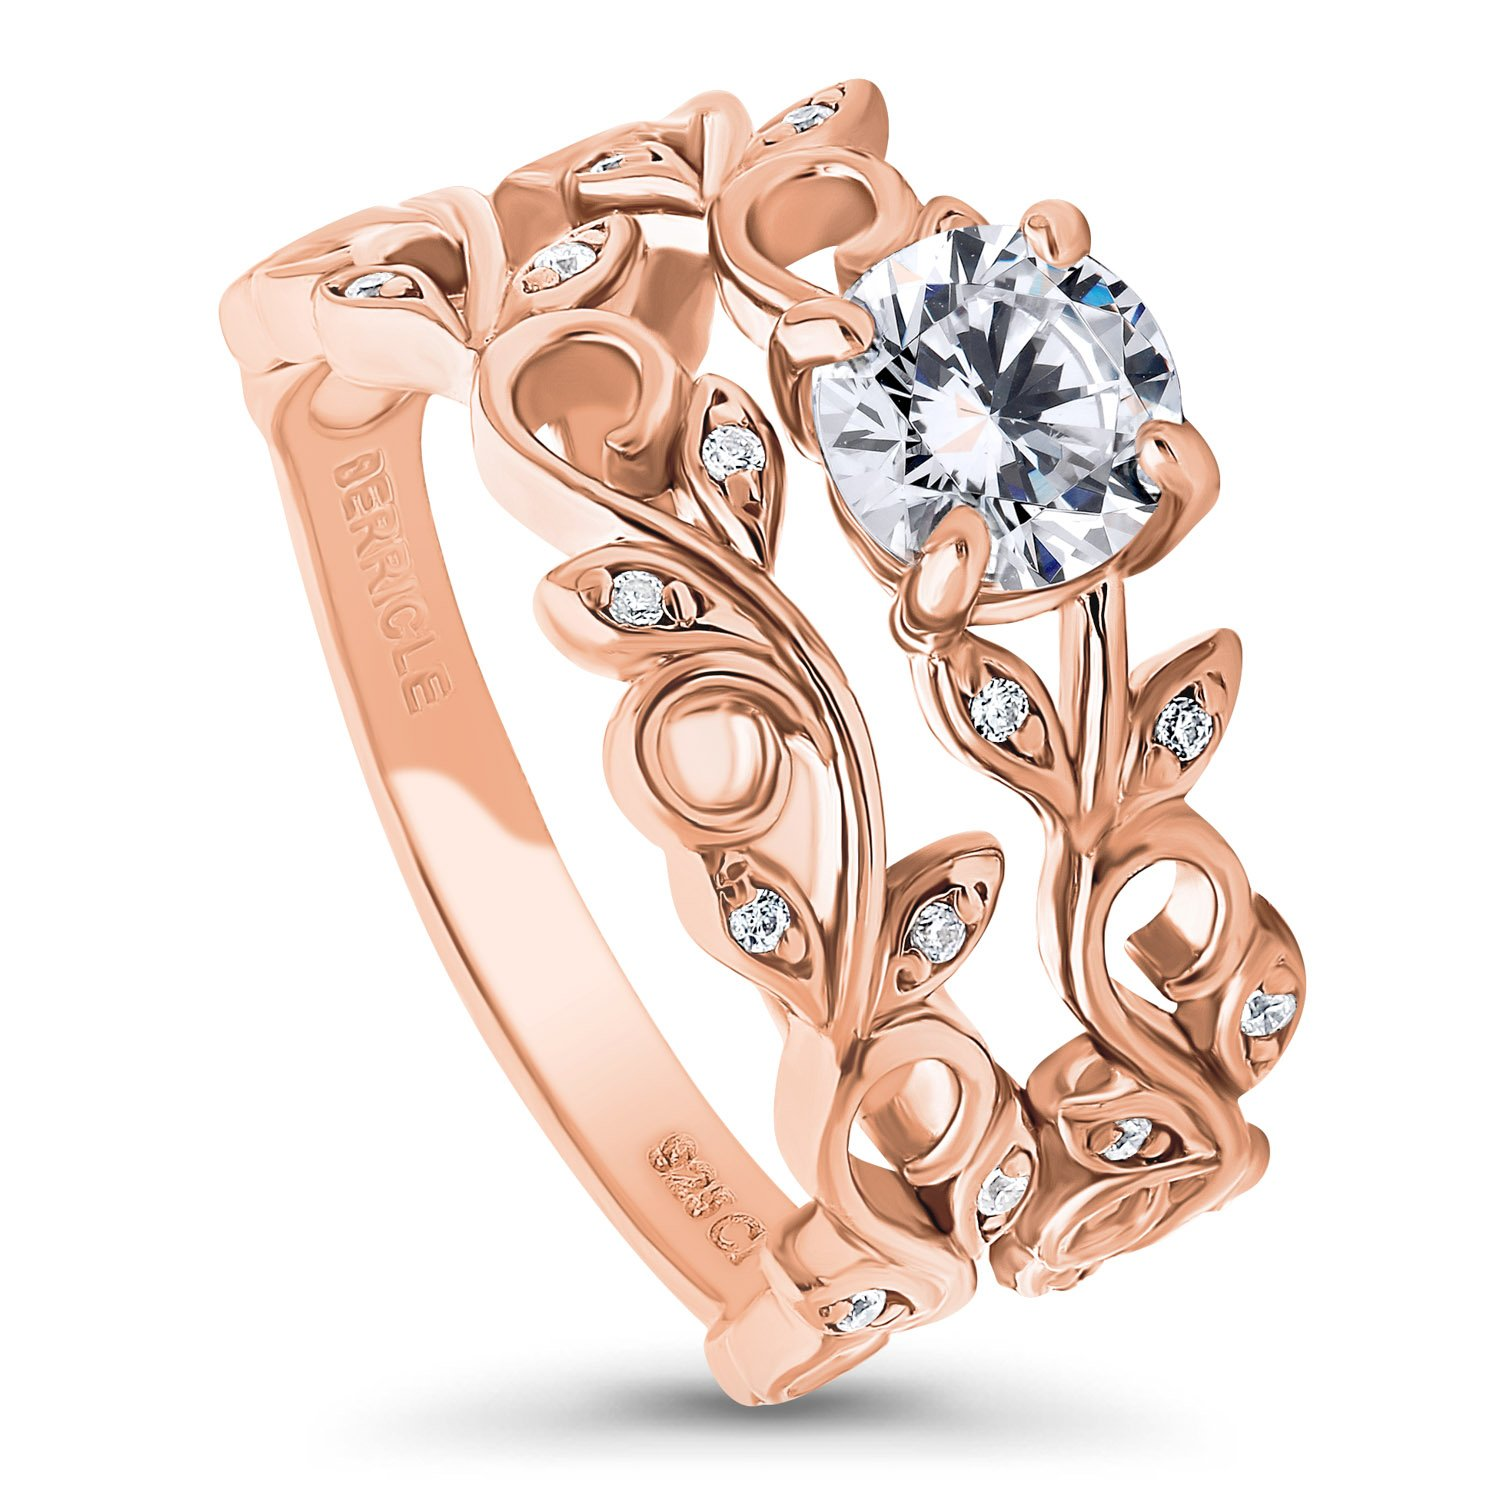 BERRICLE Rose Gold Plated Sterling Silver Cubic Zirconia CZ Filigree Leaf Solitaire Ring Set Size 8 by BERRICLE